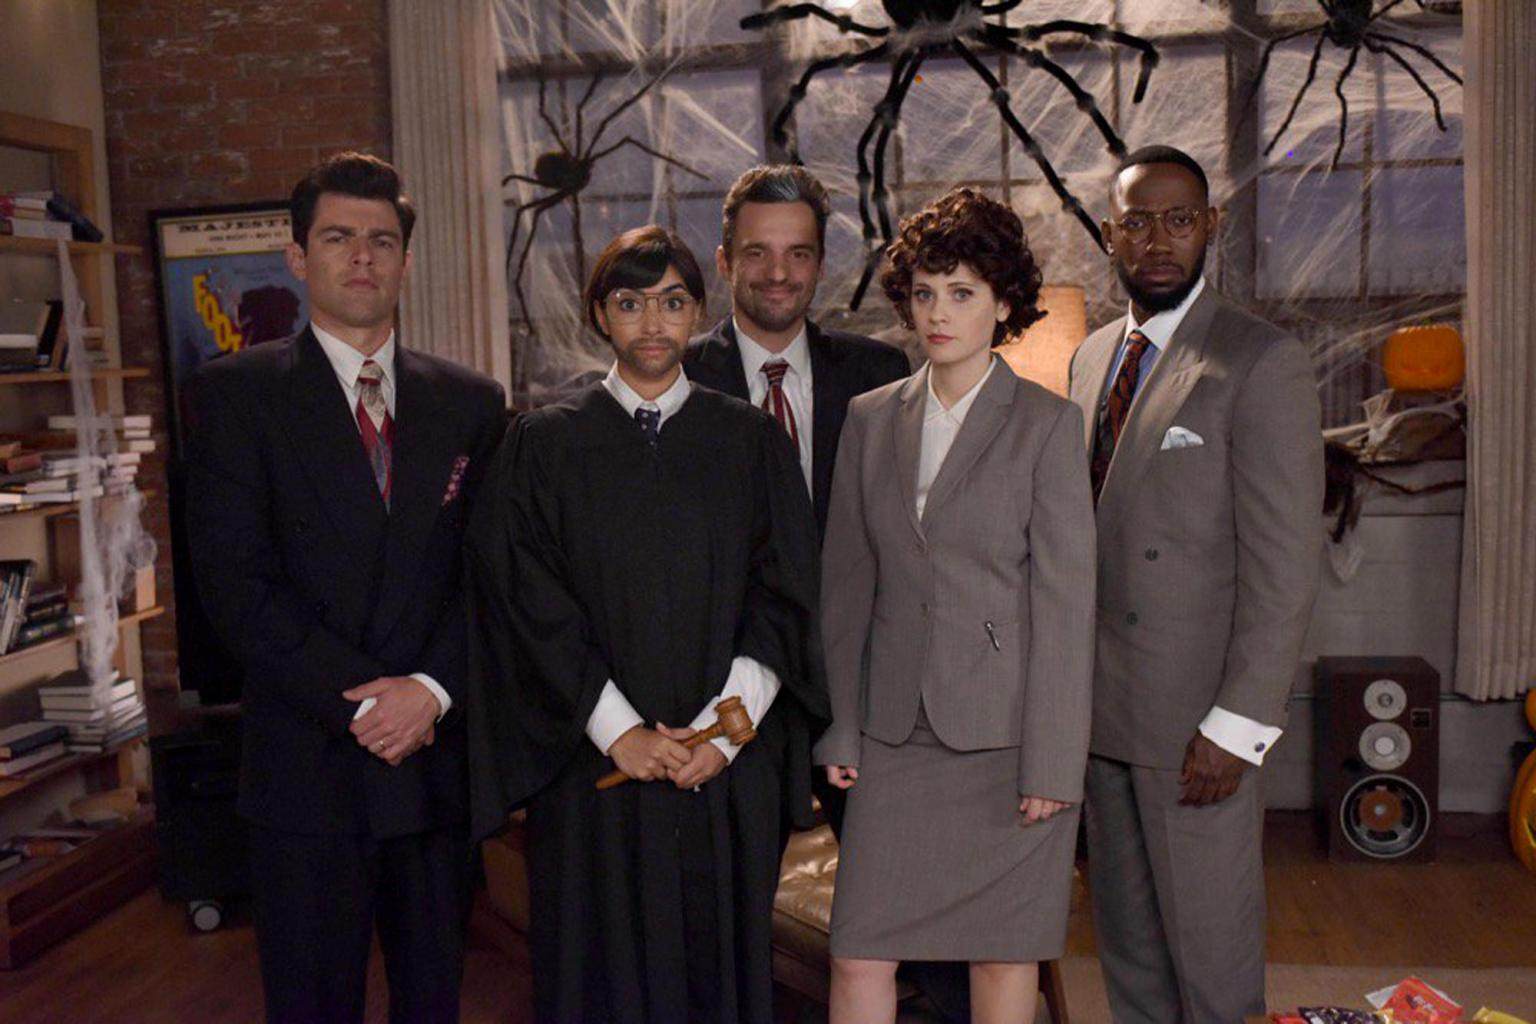 New Girl Cast Found Guilty of Having the Perfect People v. O.J. Simpson Costumes